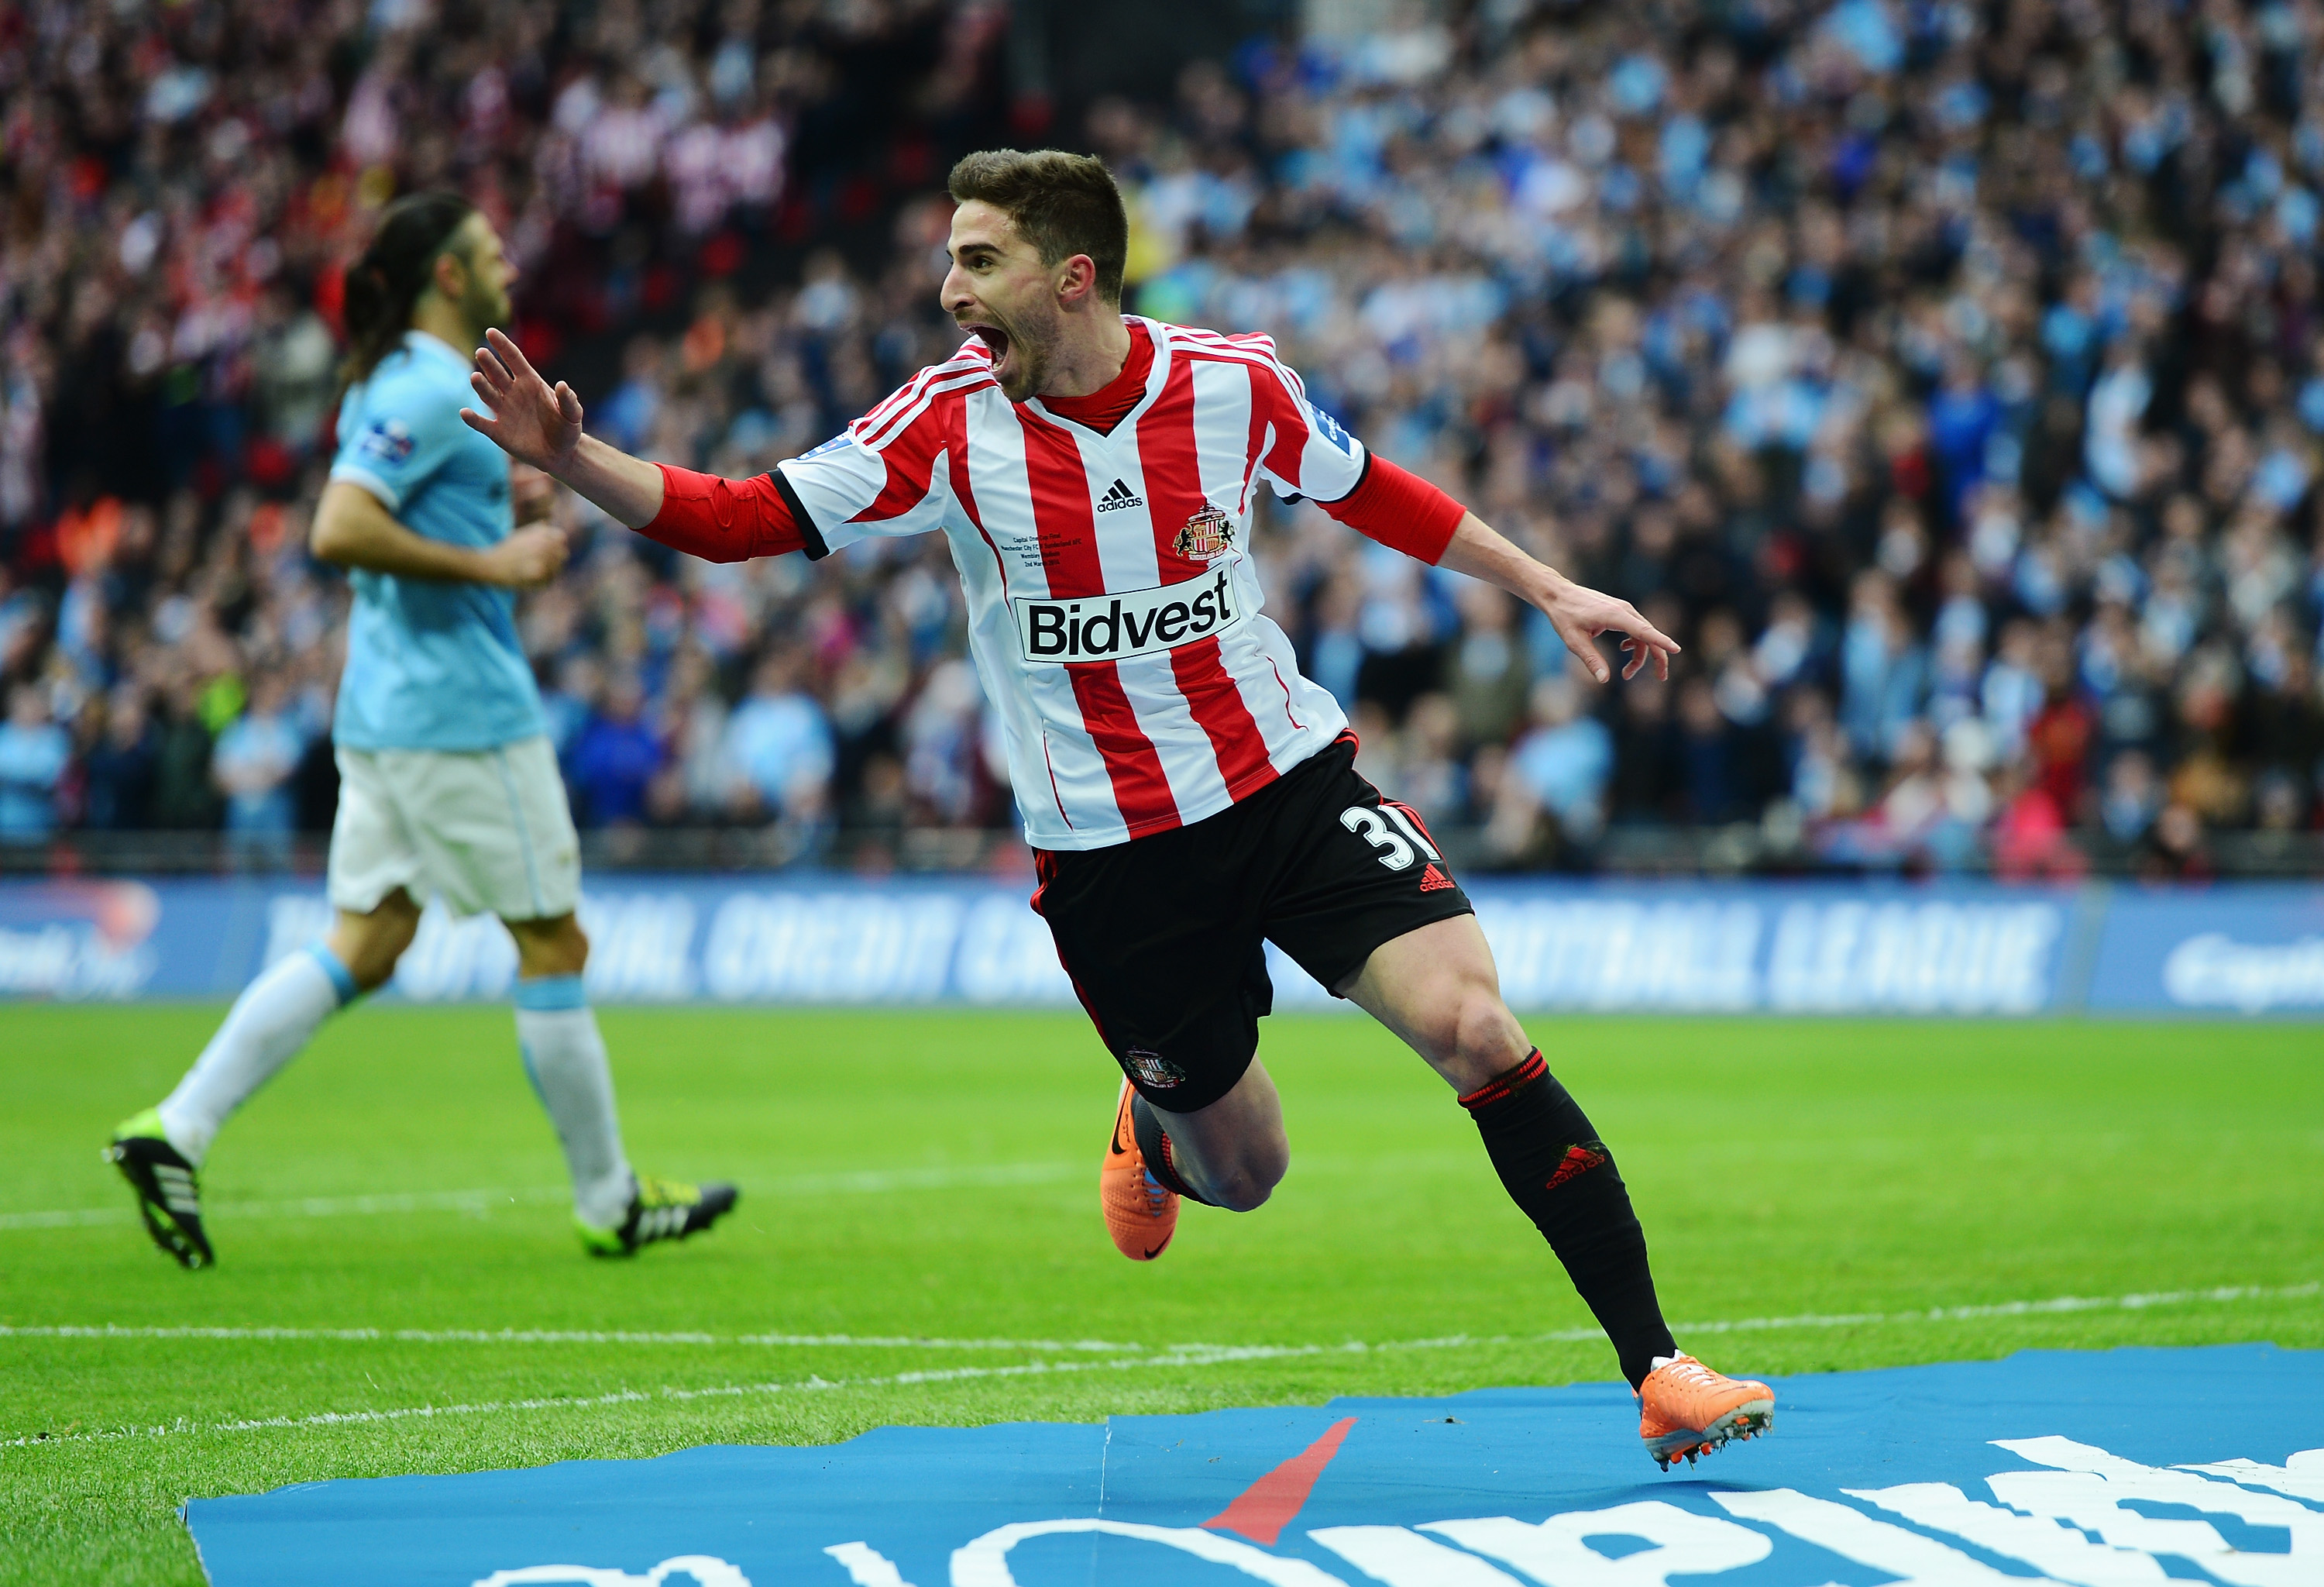 Road to Wembley: How Sunderland's run to the 2014 League Cup Final brought life back to Wearside